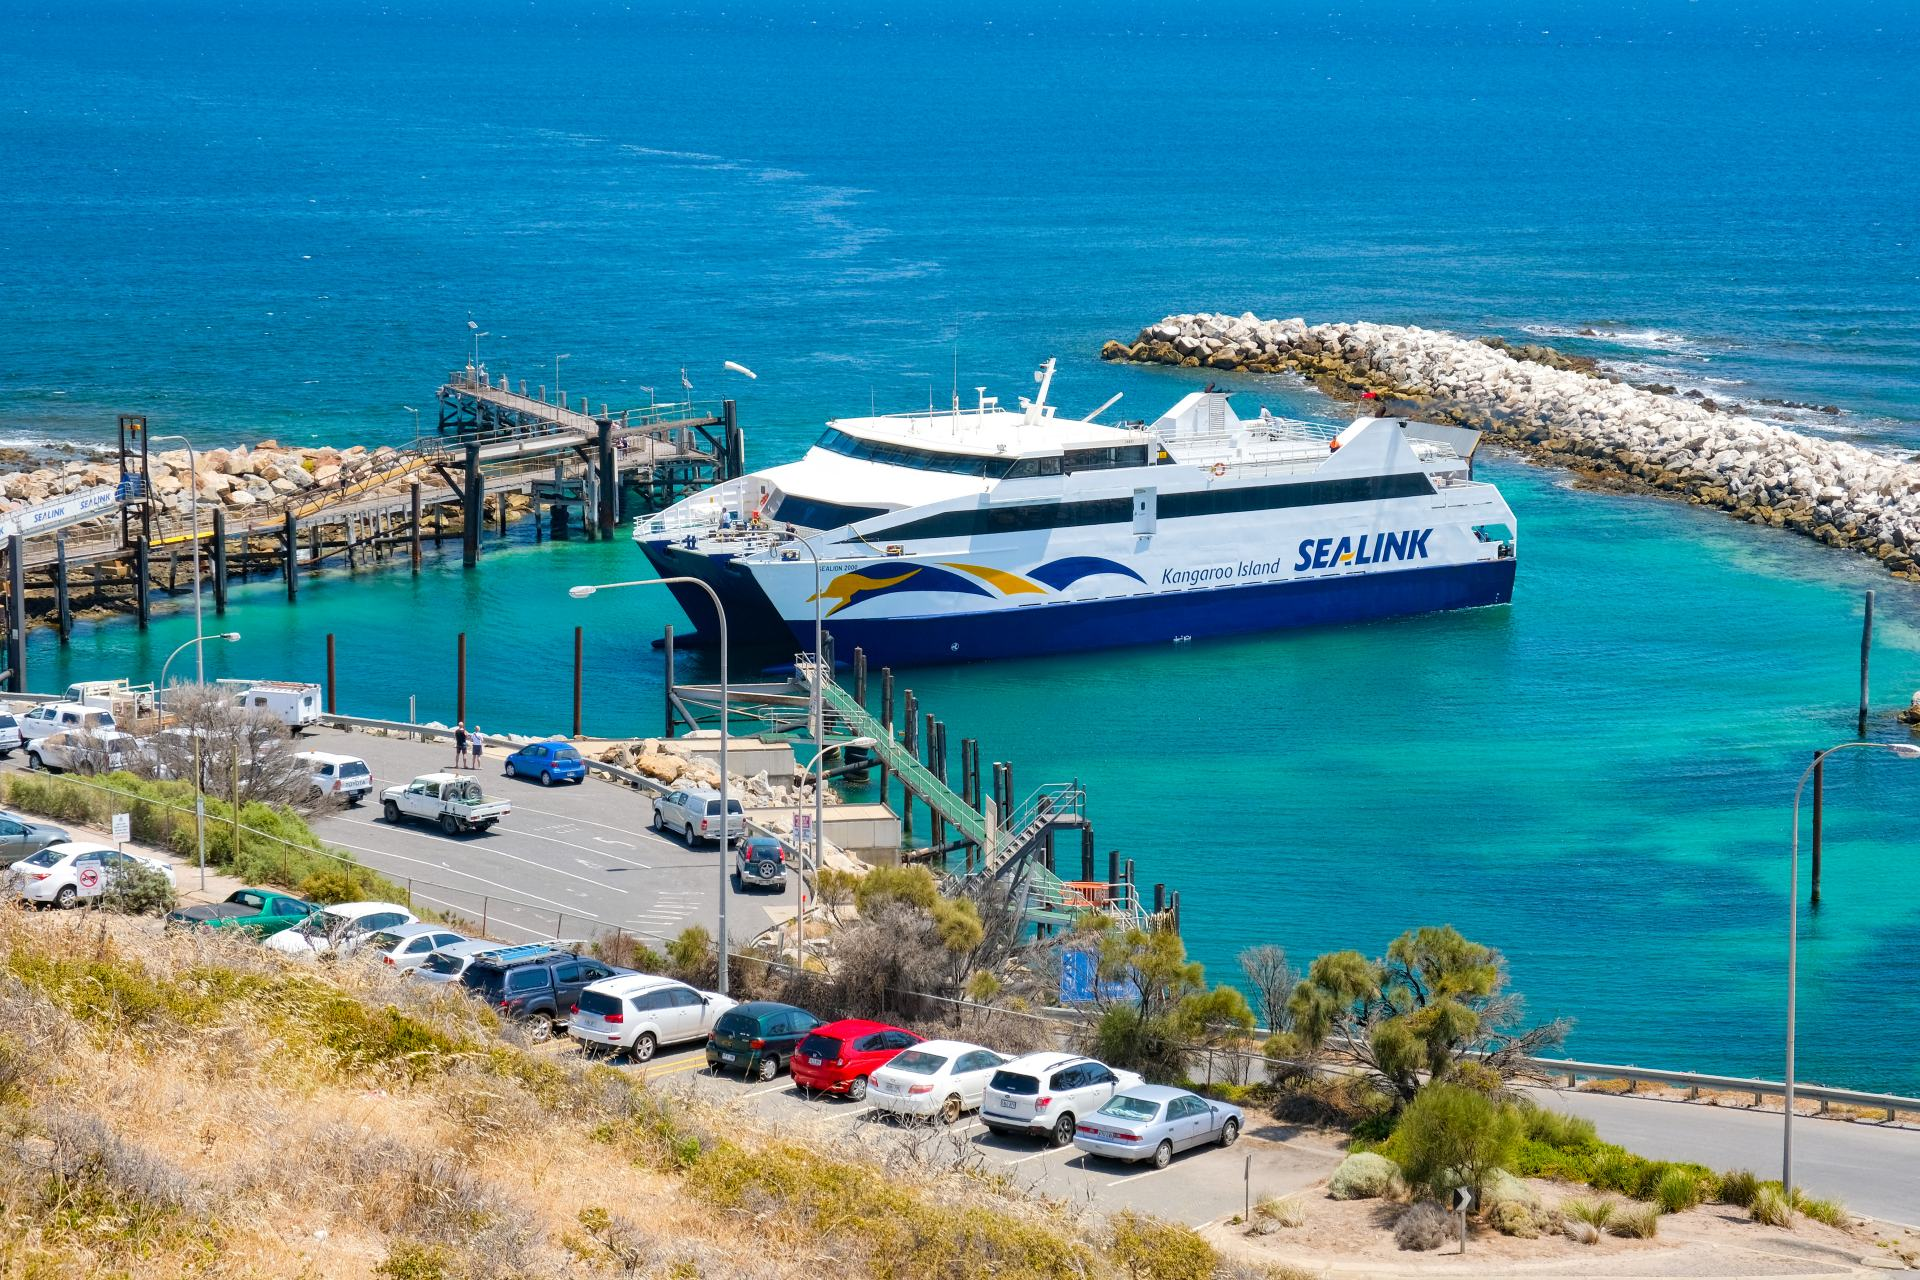 sealink ferry to kangaroo island